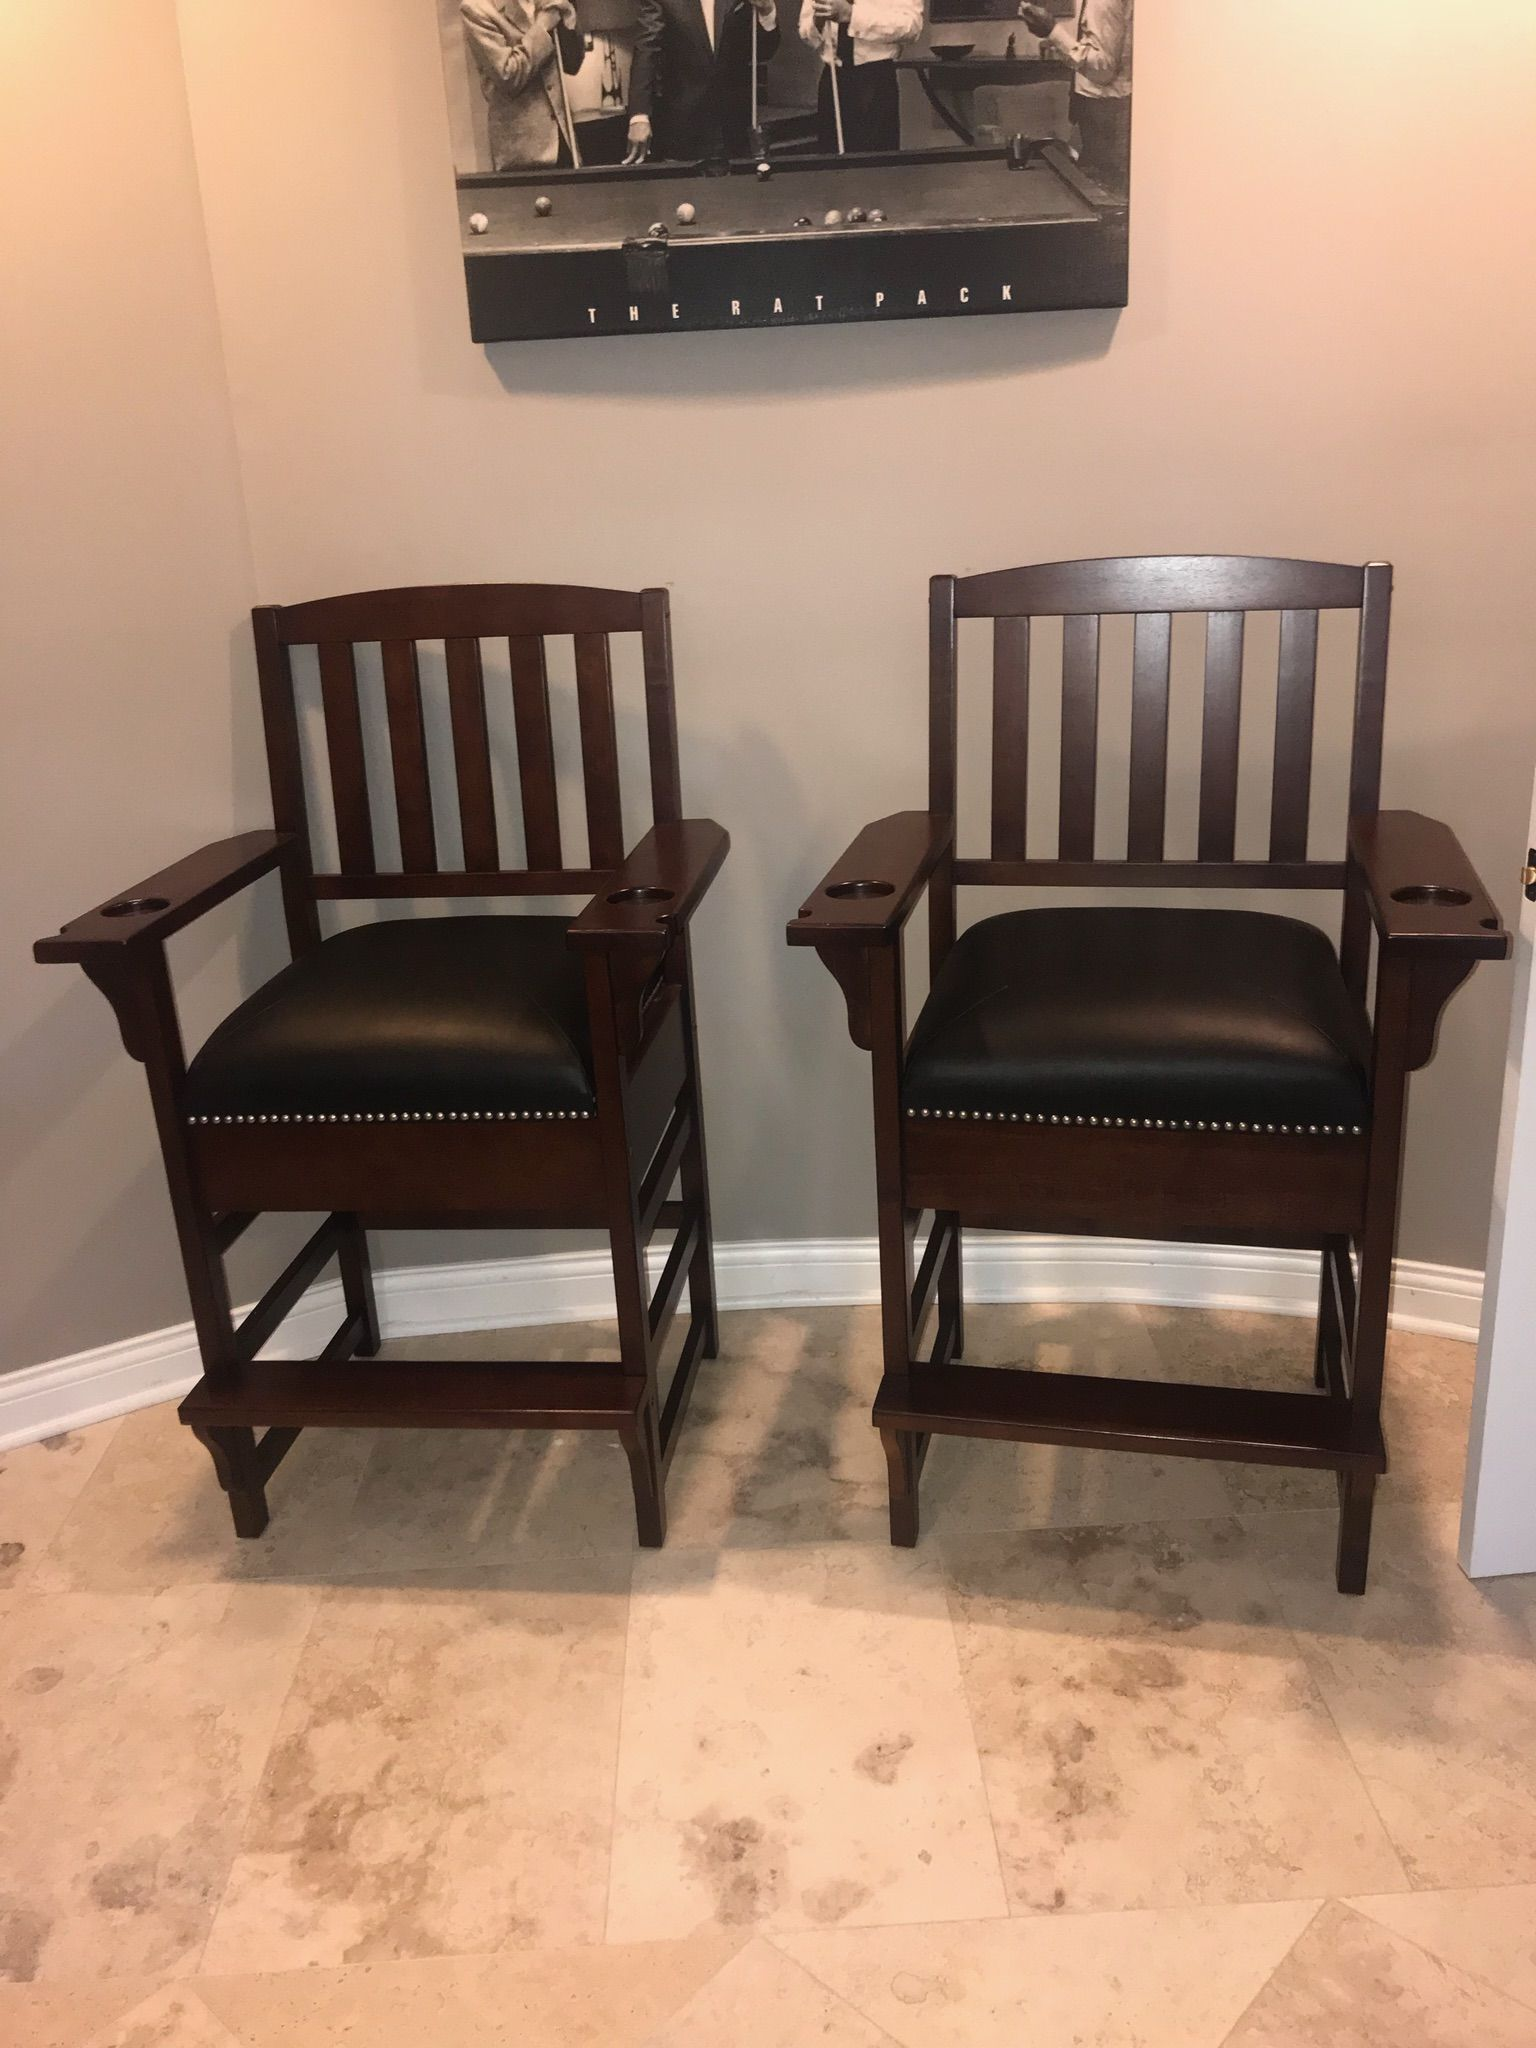 King Spectator Billiards Chairs